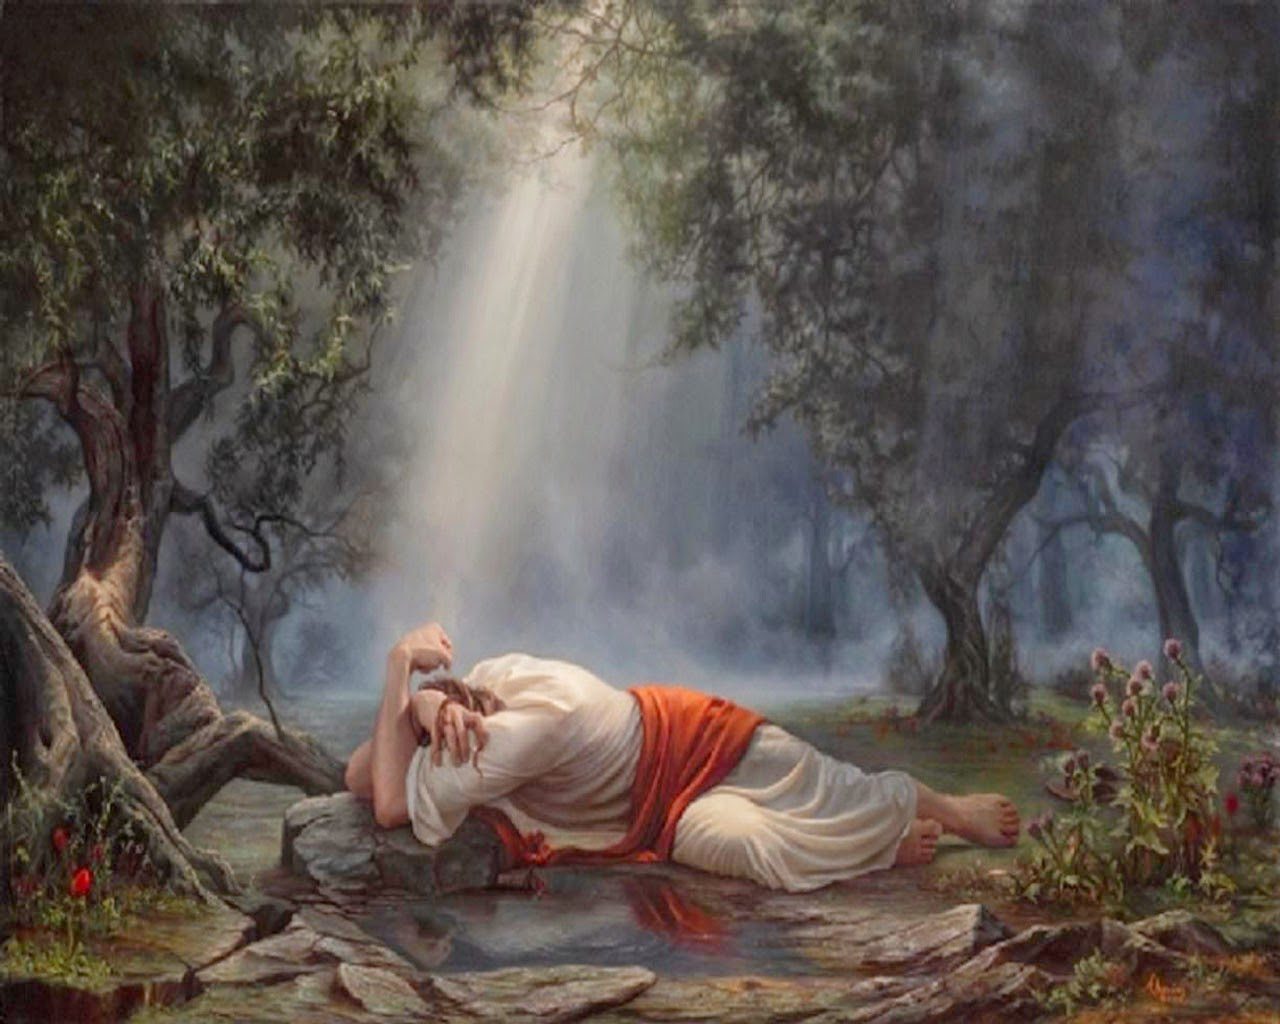 Word of truth lighthouse jesus 39 final week of work thursday to approx midnight Jesus praying in the garden of gethsemane